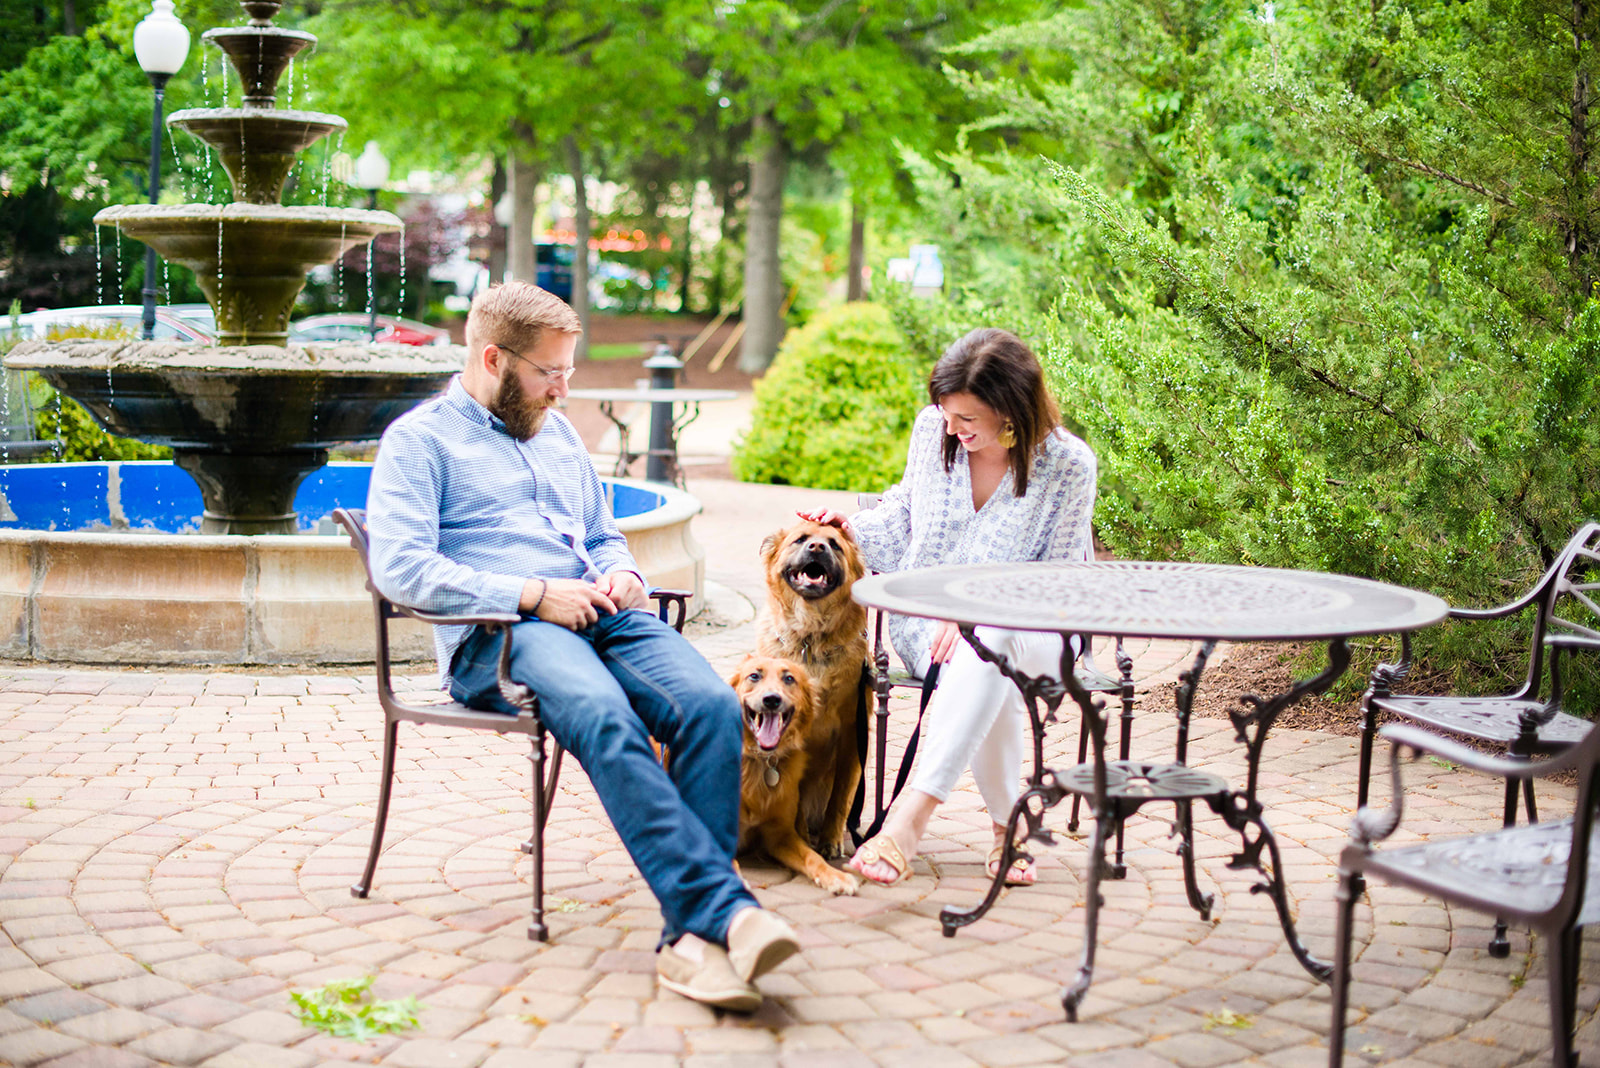 photos with dogs courtesy of Meghan from I'm Fixin' to blog.